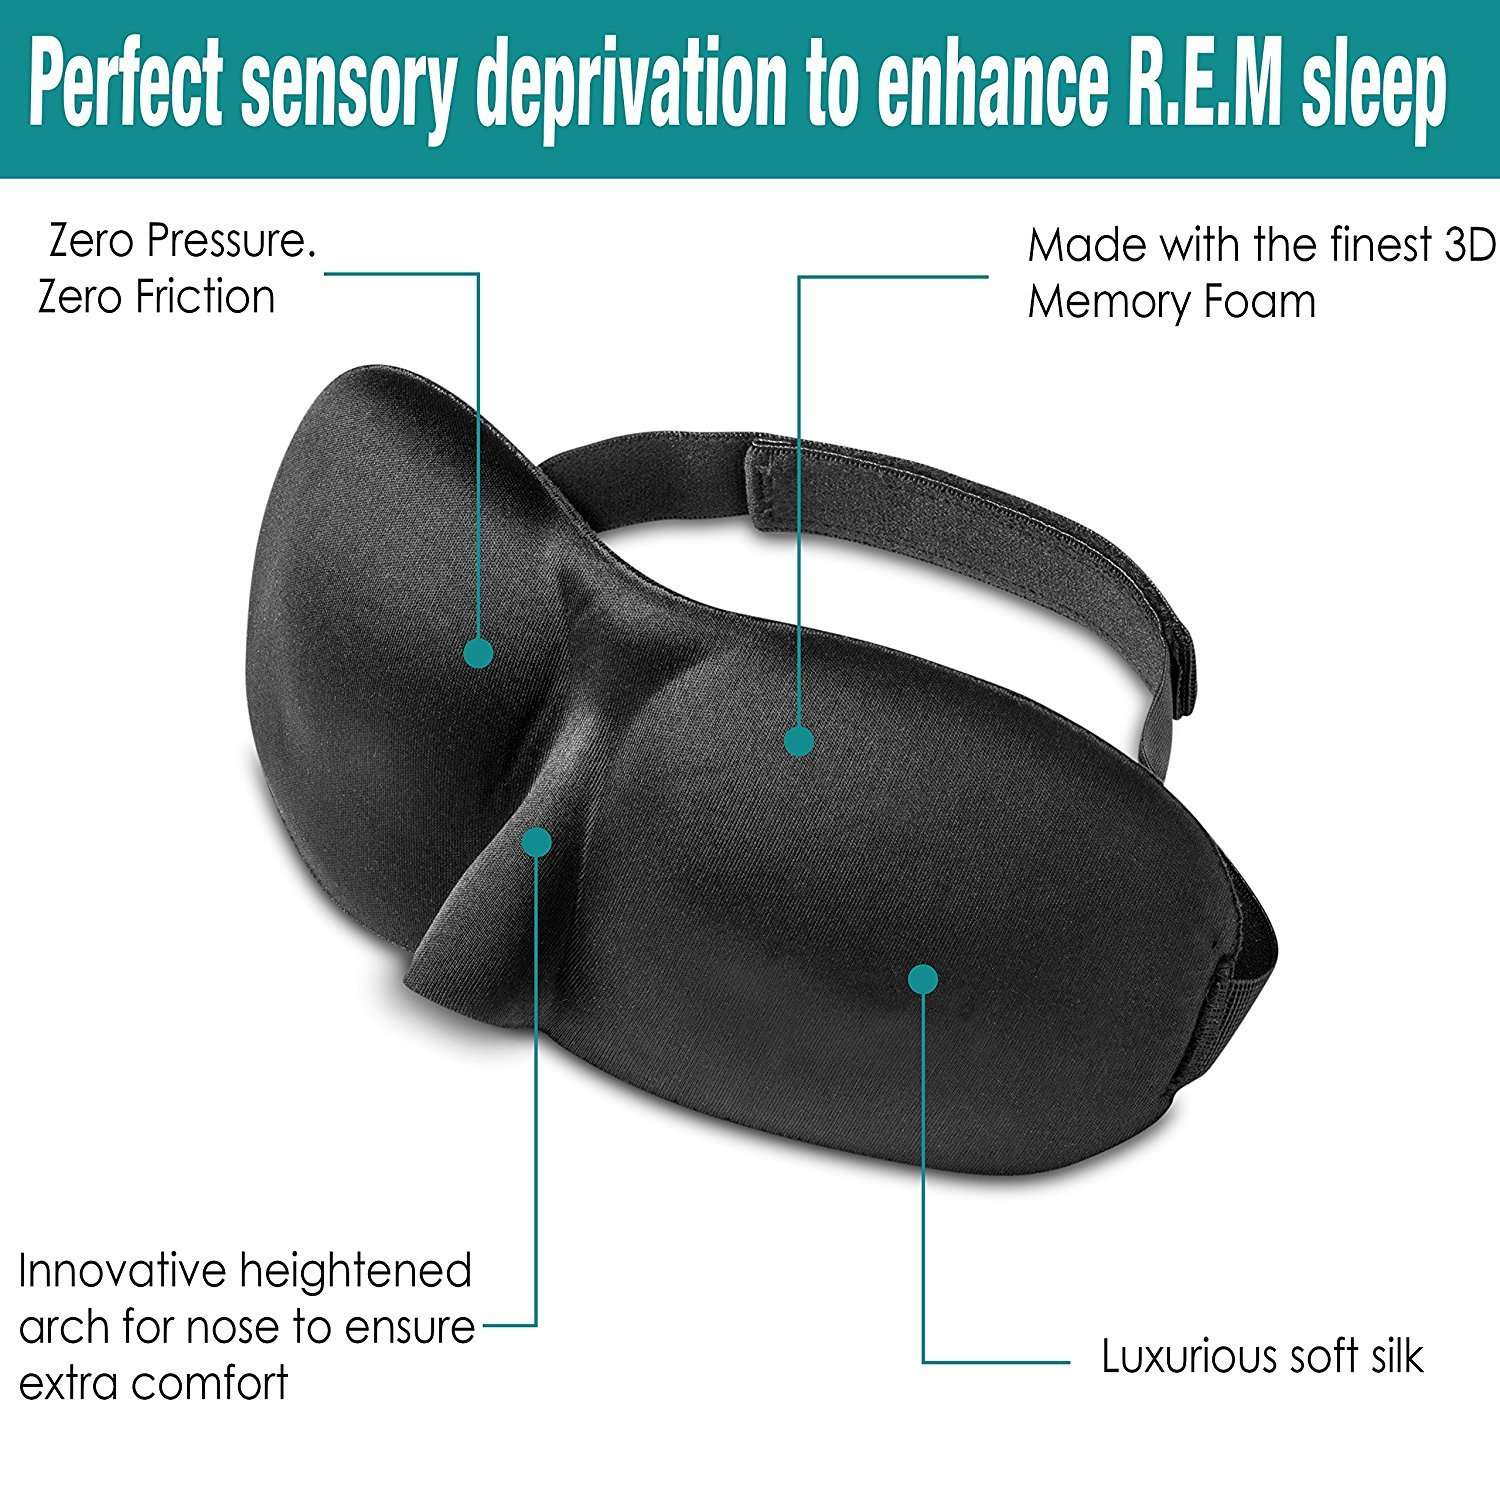 3D Memory Foam Sleep Mask With Heightened Nose Arch | Breathable Fabric & Adjustable Velcro Strap | For Men, Women, Meditation, Shift Workers & More | Bonus Travel Case & Ear Plugs